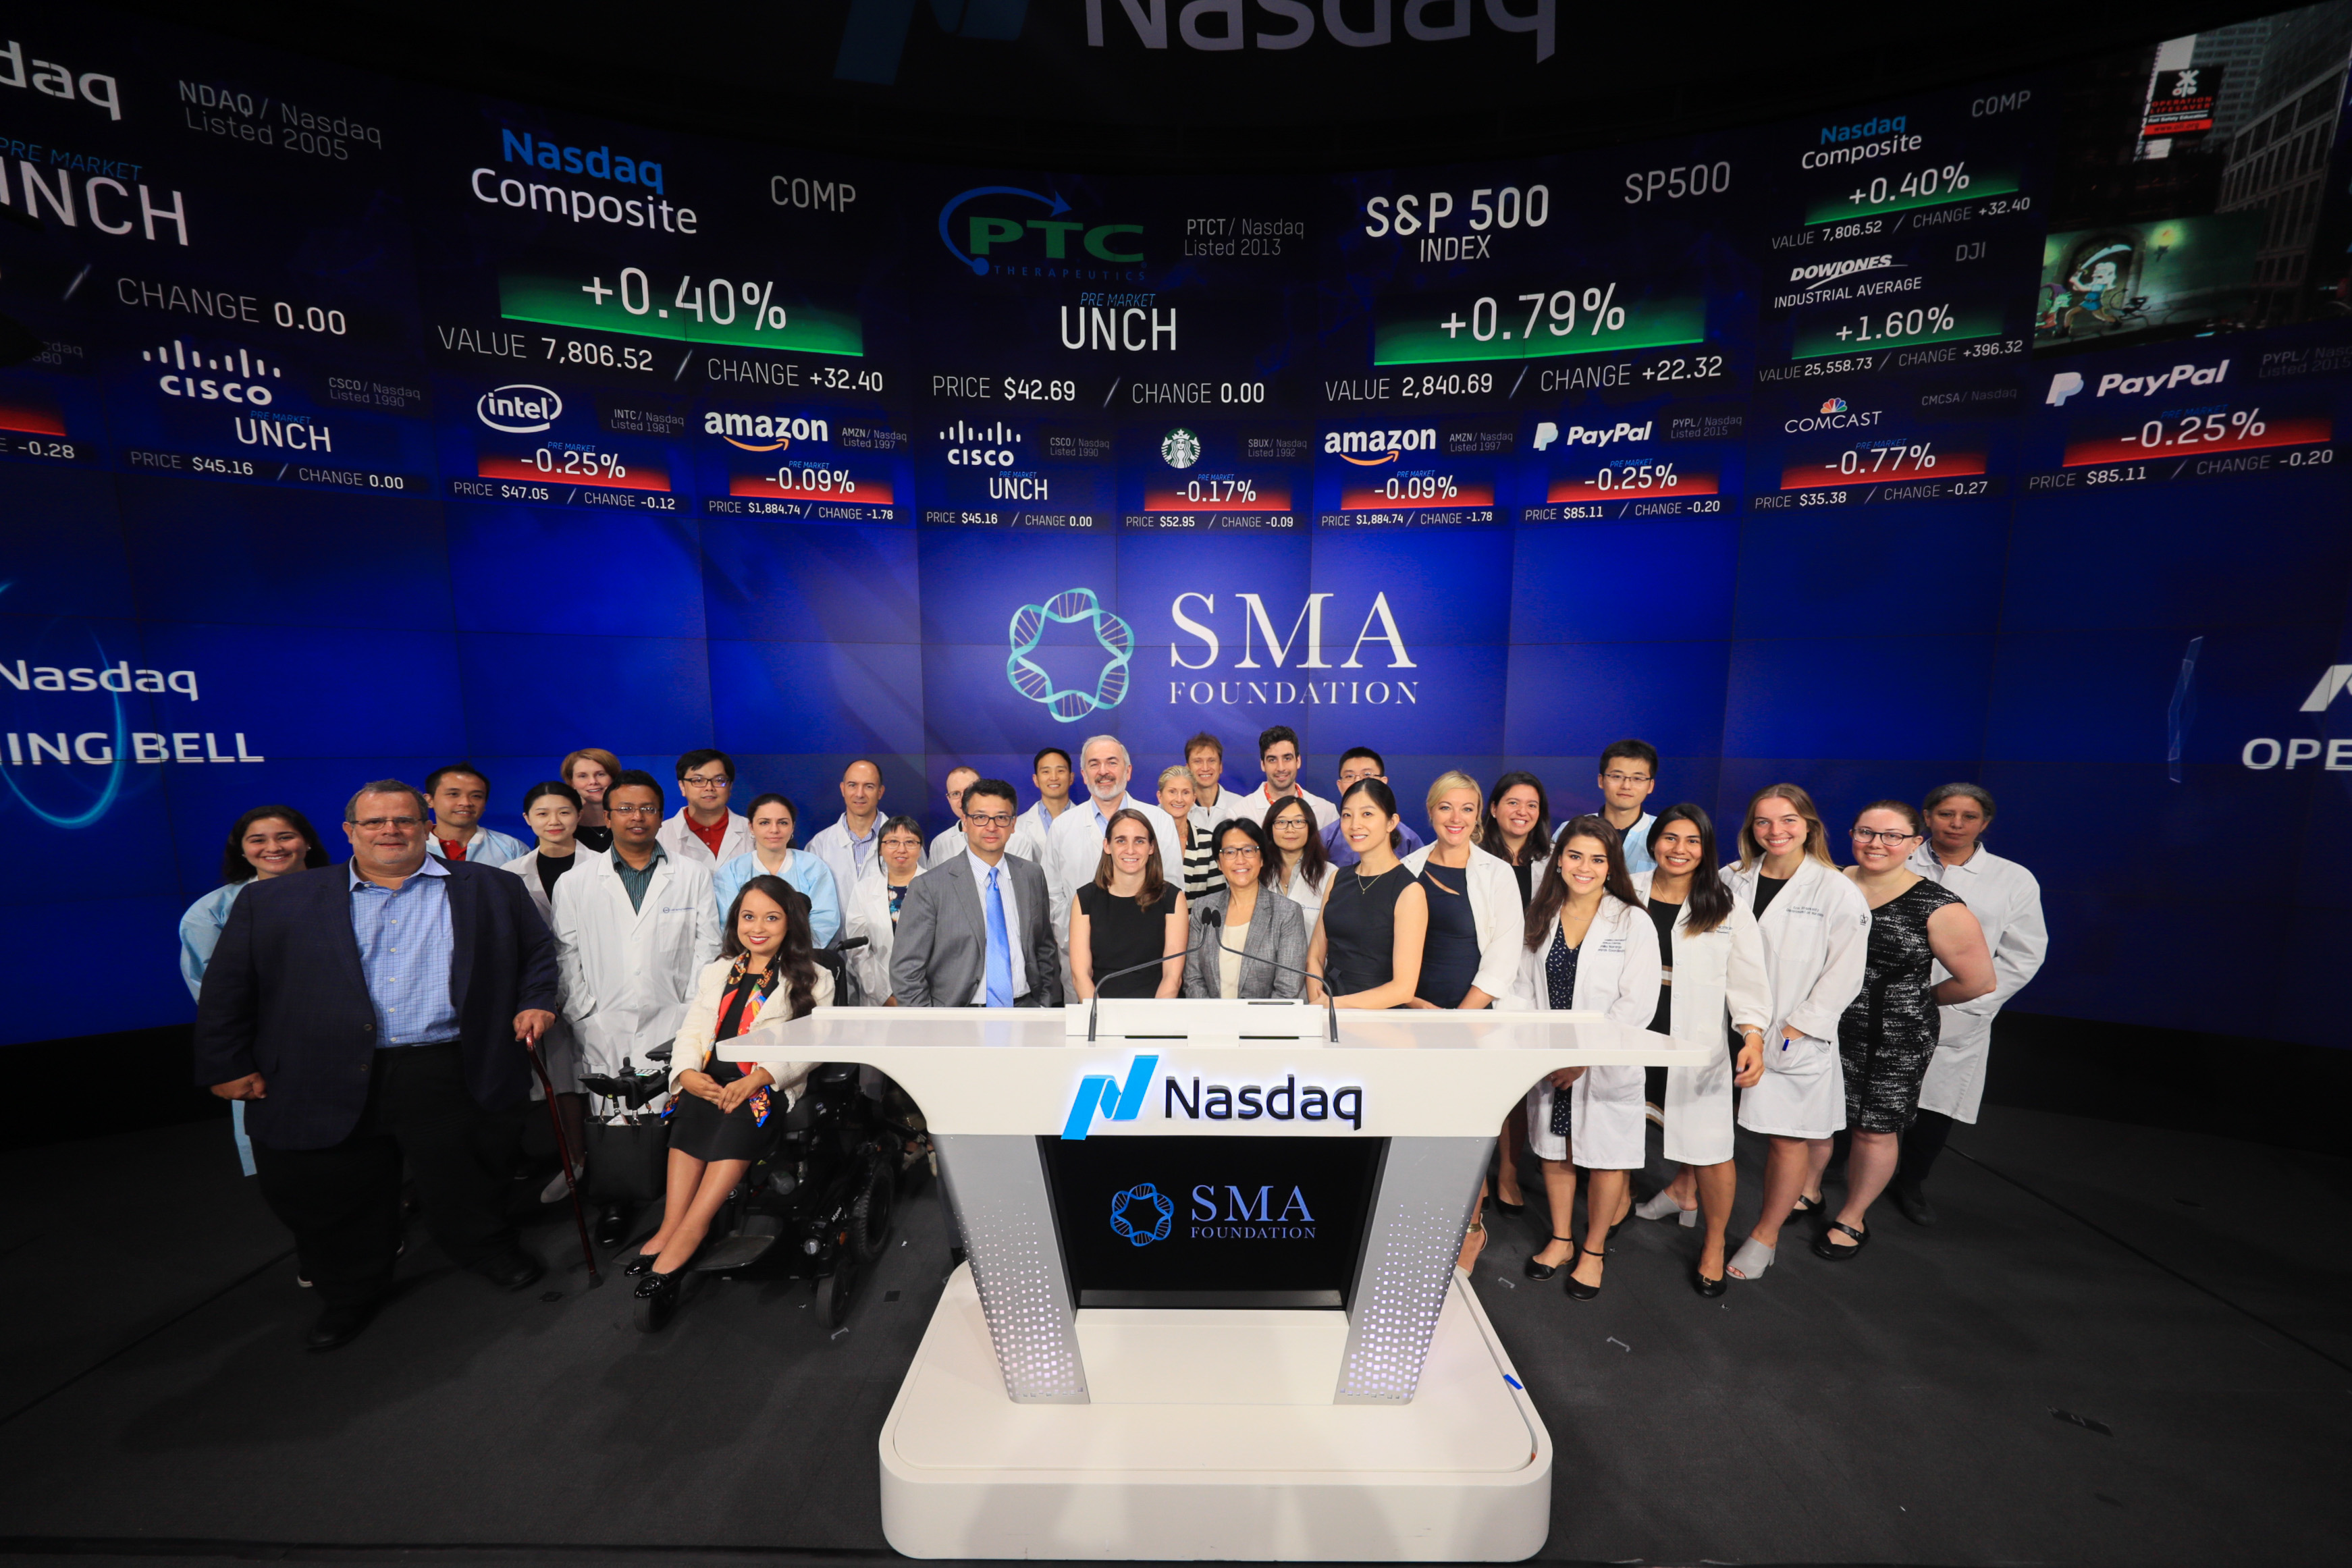 The Spinal Muscular Atrophy Foundation rings Nasdaq opening bell